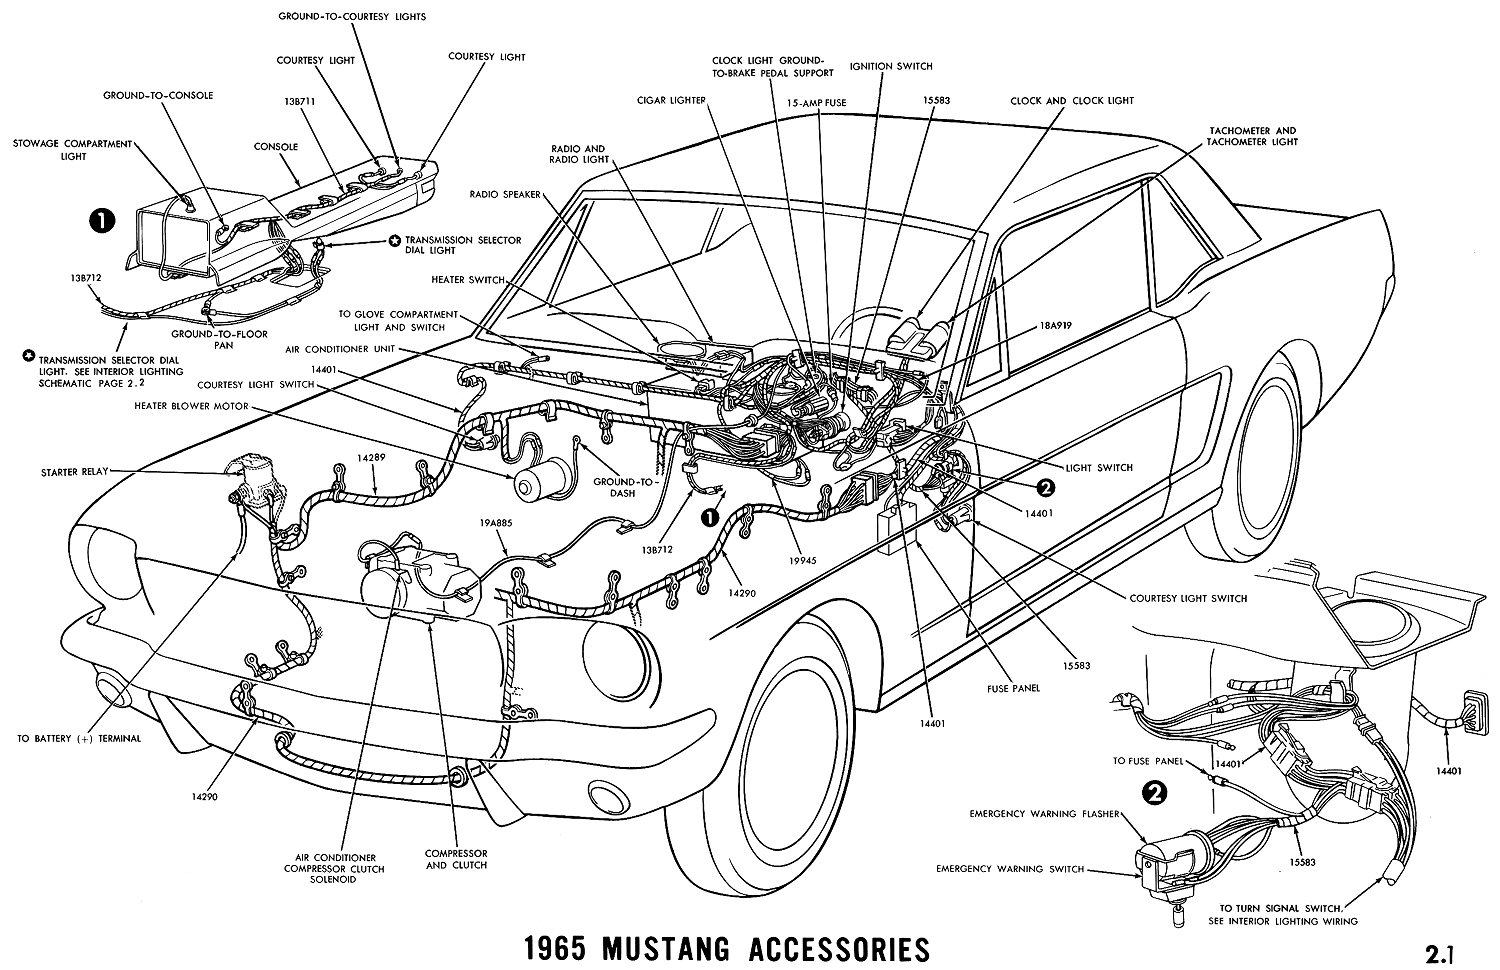 1965h 1965 mustang wiring diagrams average joe restoration 65 mustang tail light wiring diagram at n-0.co